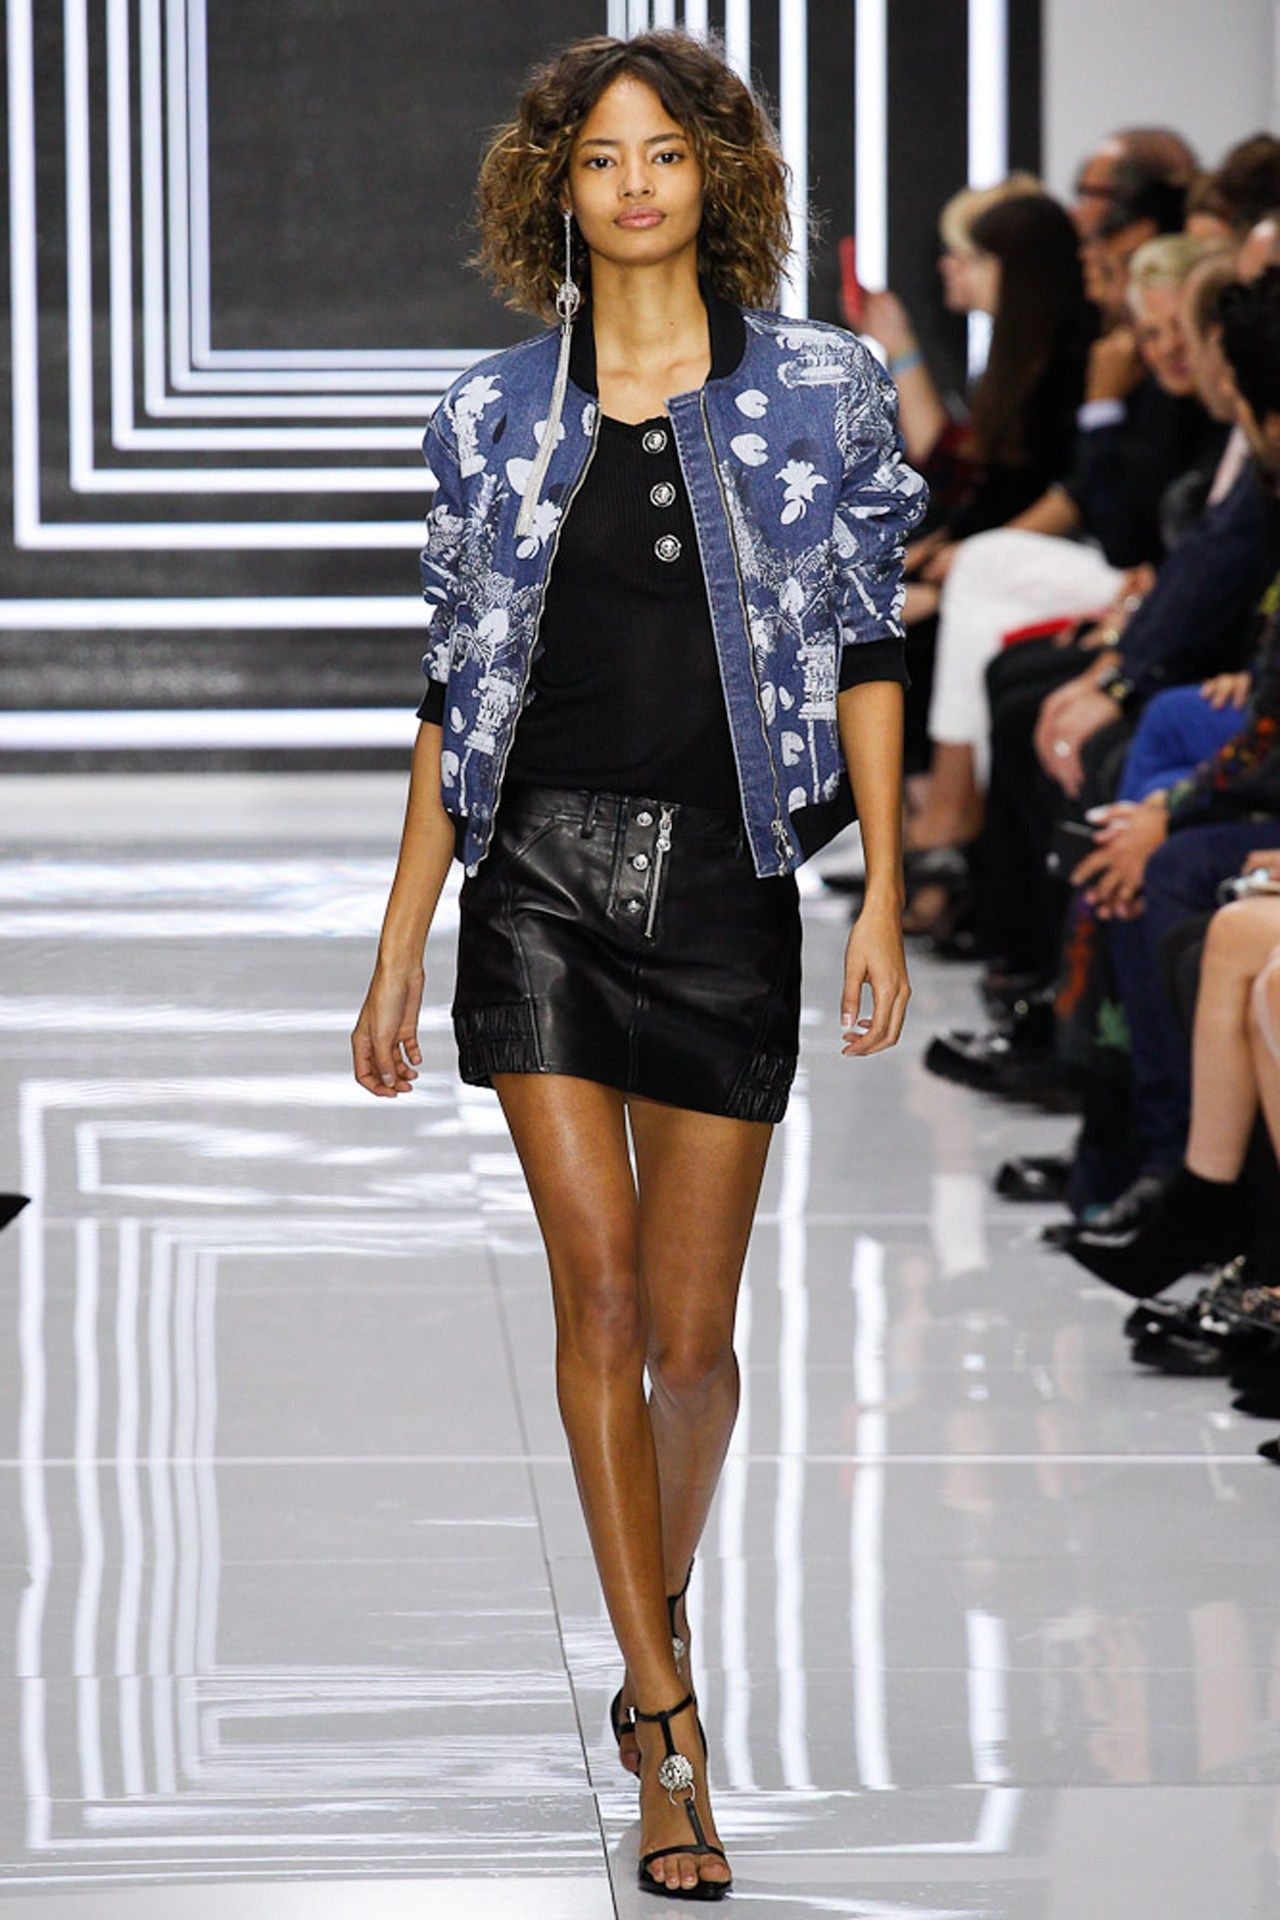 See the Versus spring/summer 2016 collection. Click through for full gallery at vogue.co.uk